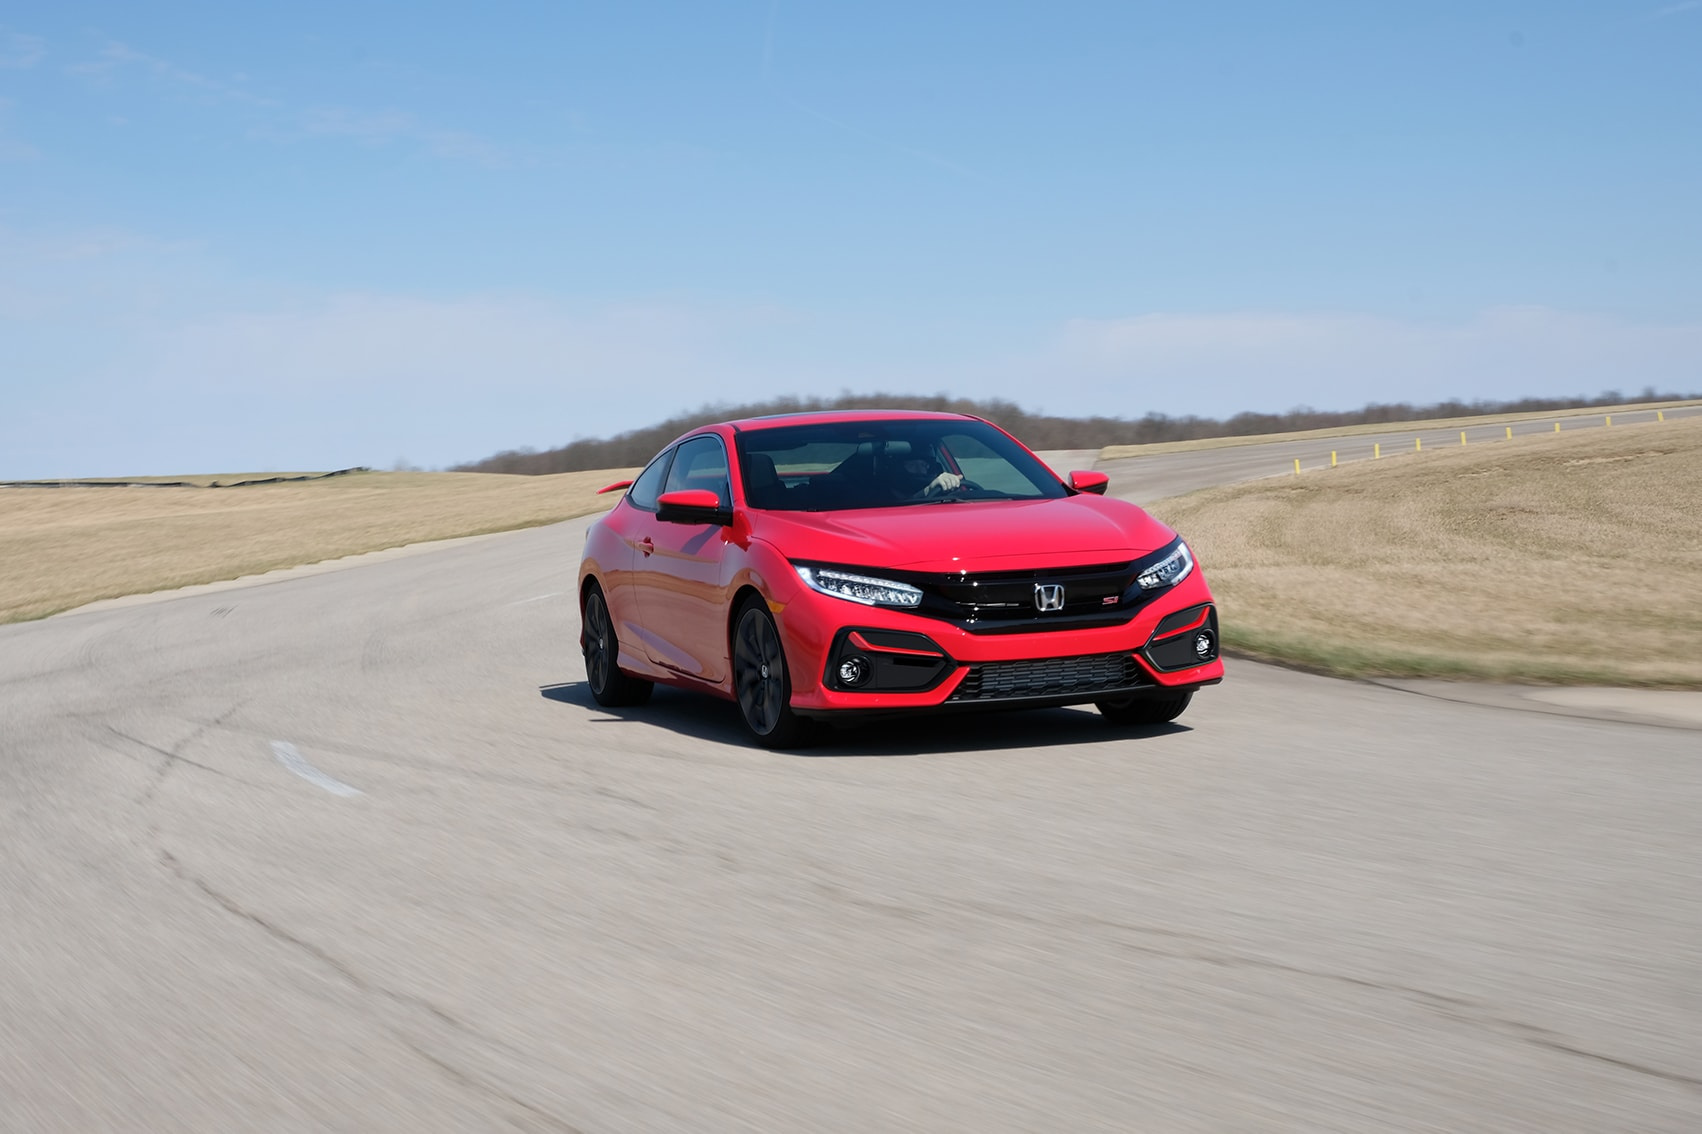 Boch Honda West is a Family Owned Dealership near Chelmsford, MA | Red 2020 Honda Civic on the track